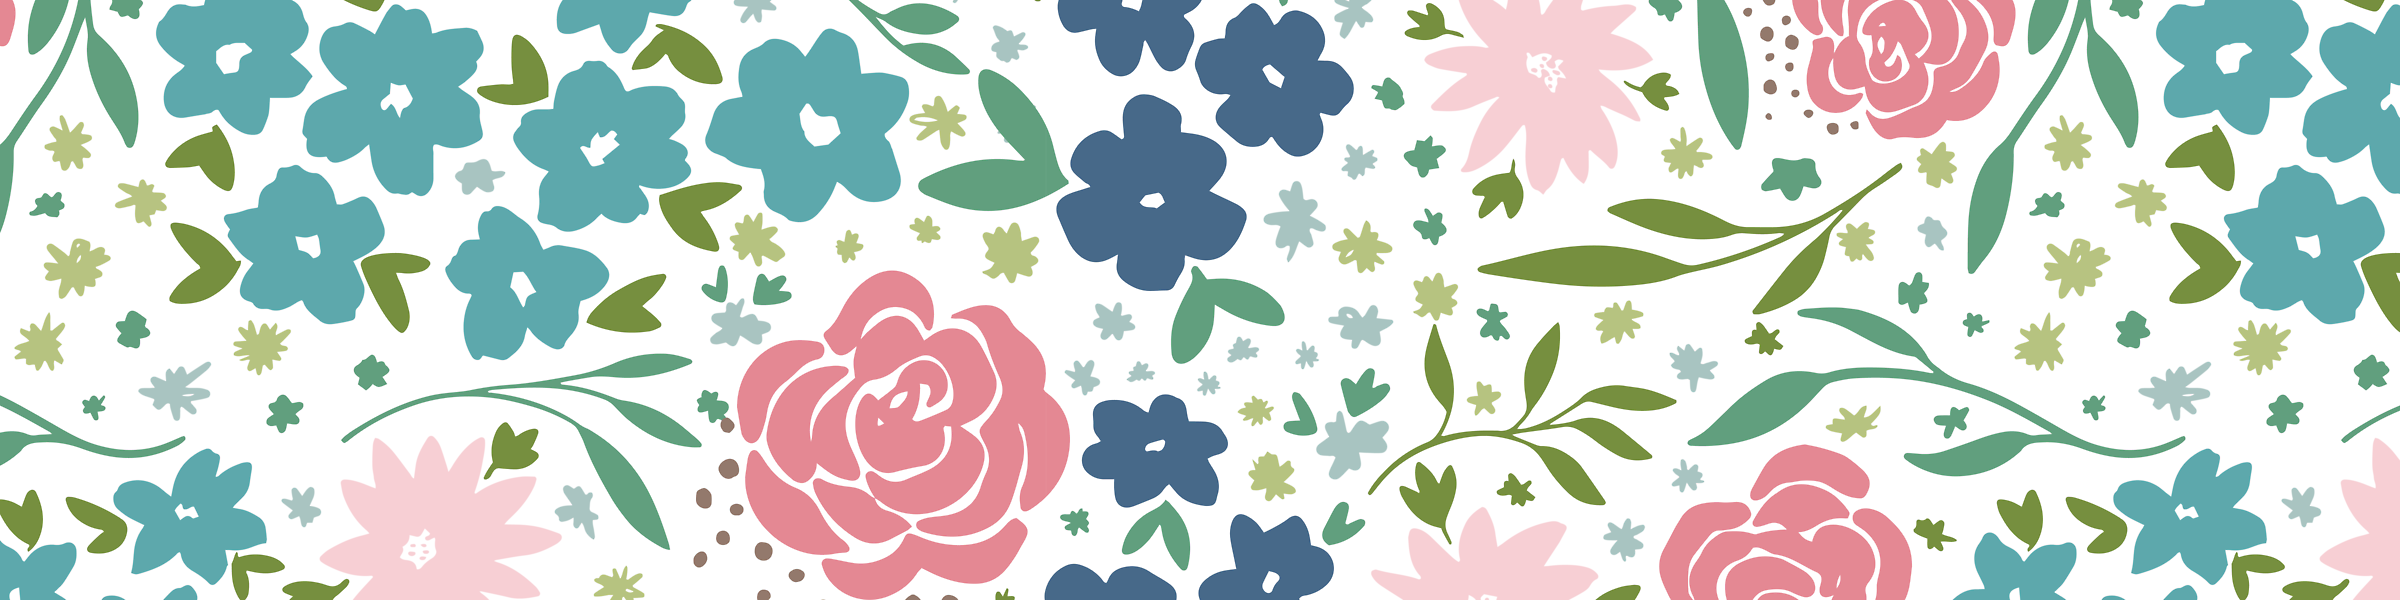 Floral Illustrations   LZ Cathcart   Surface pattern